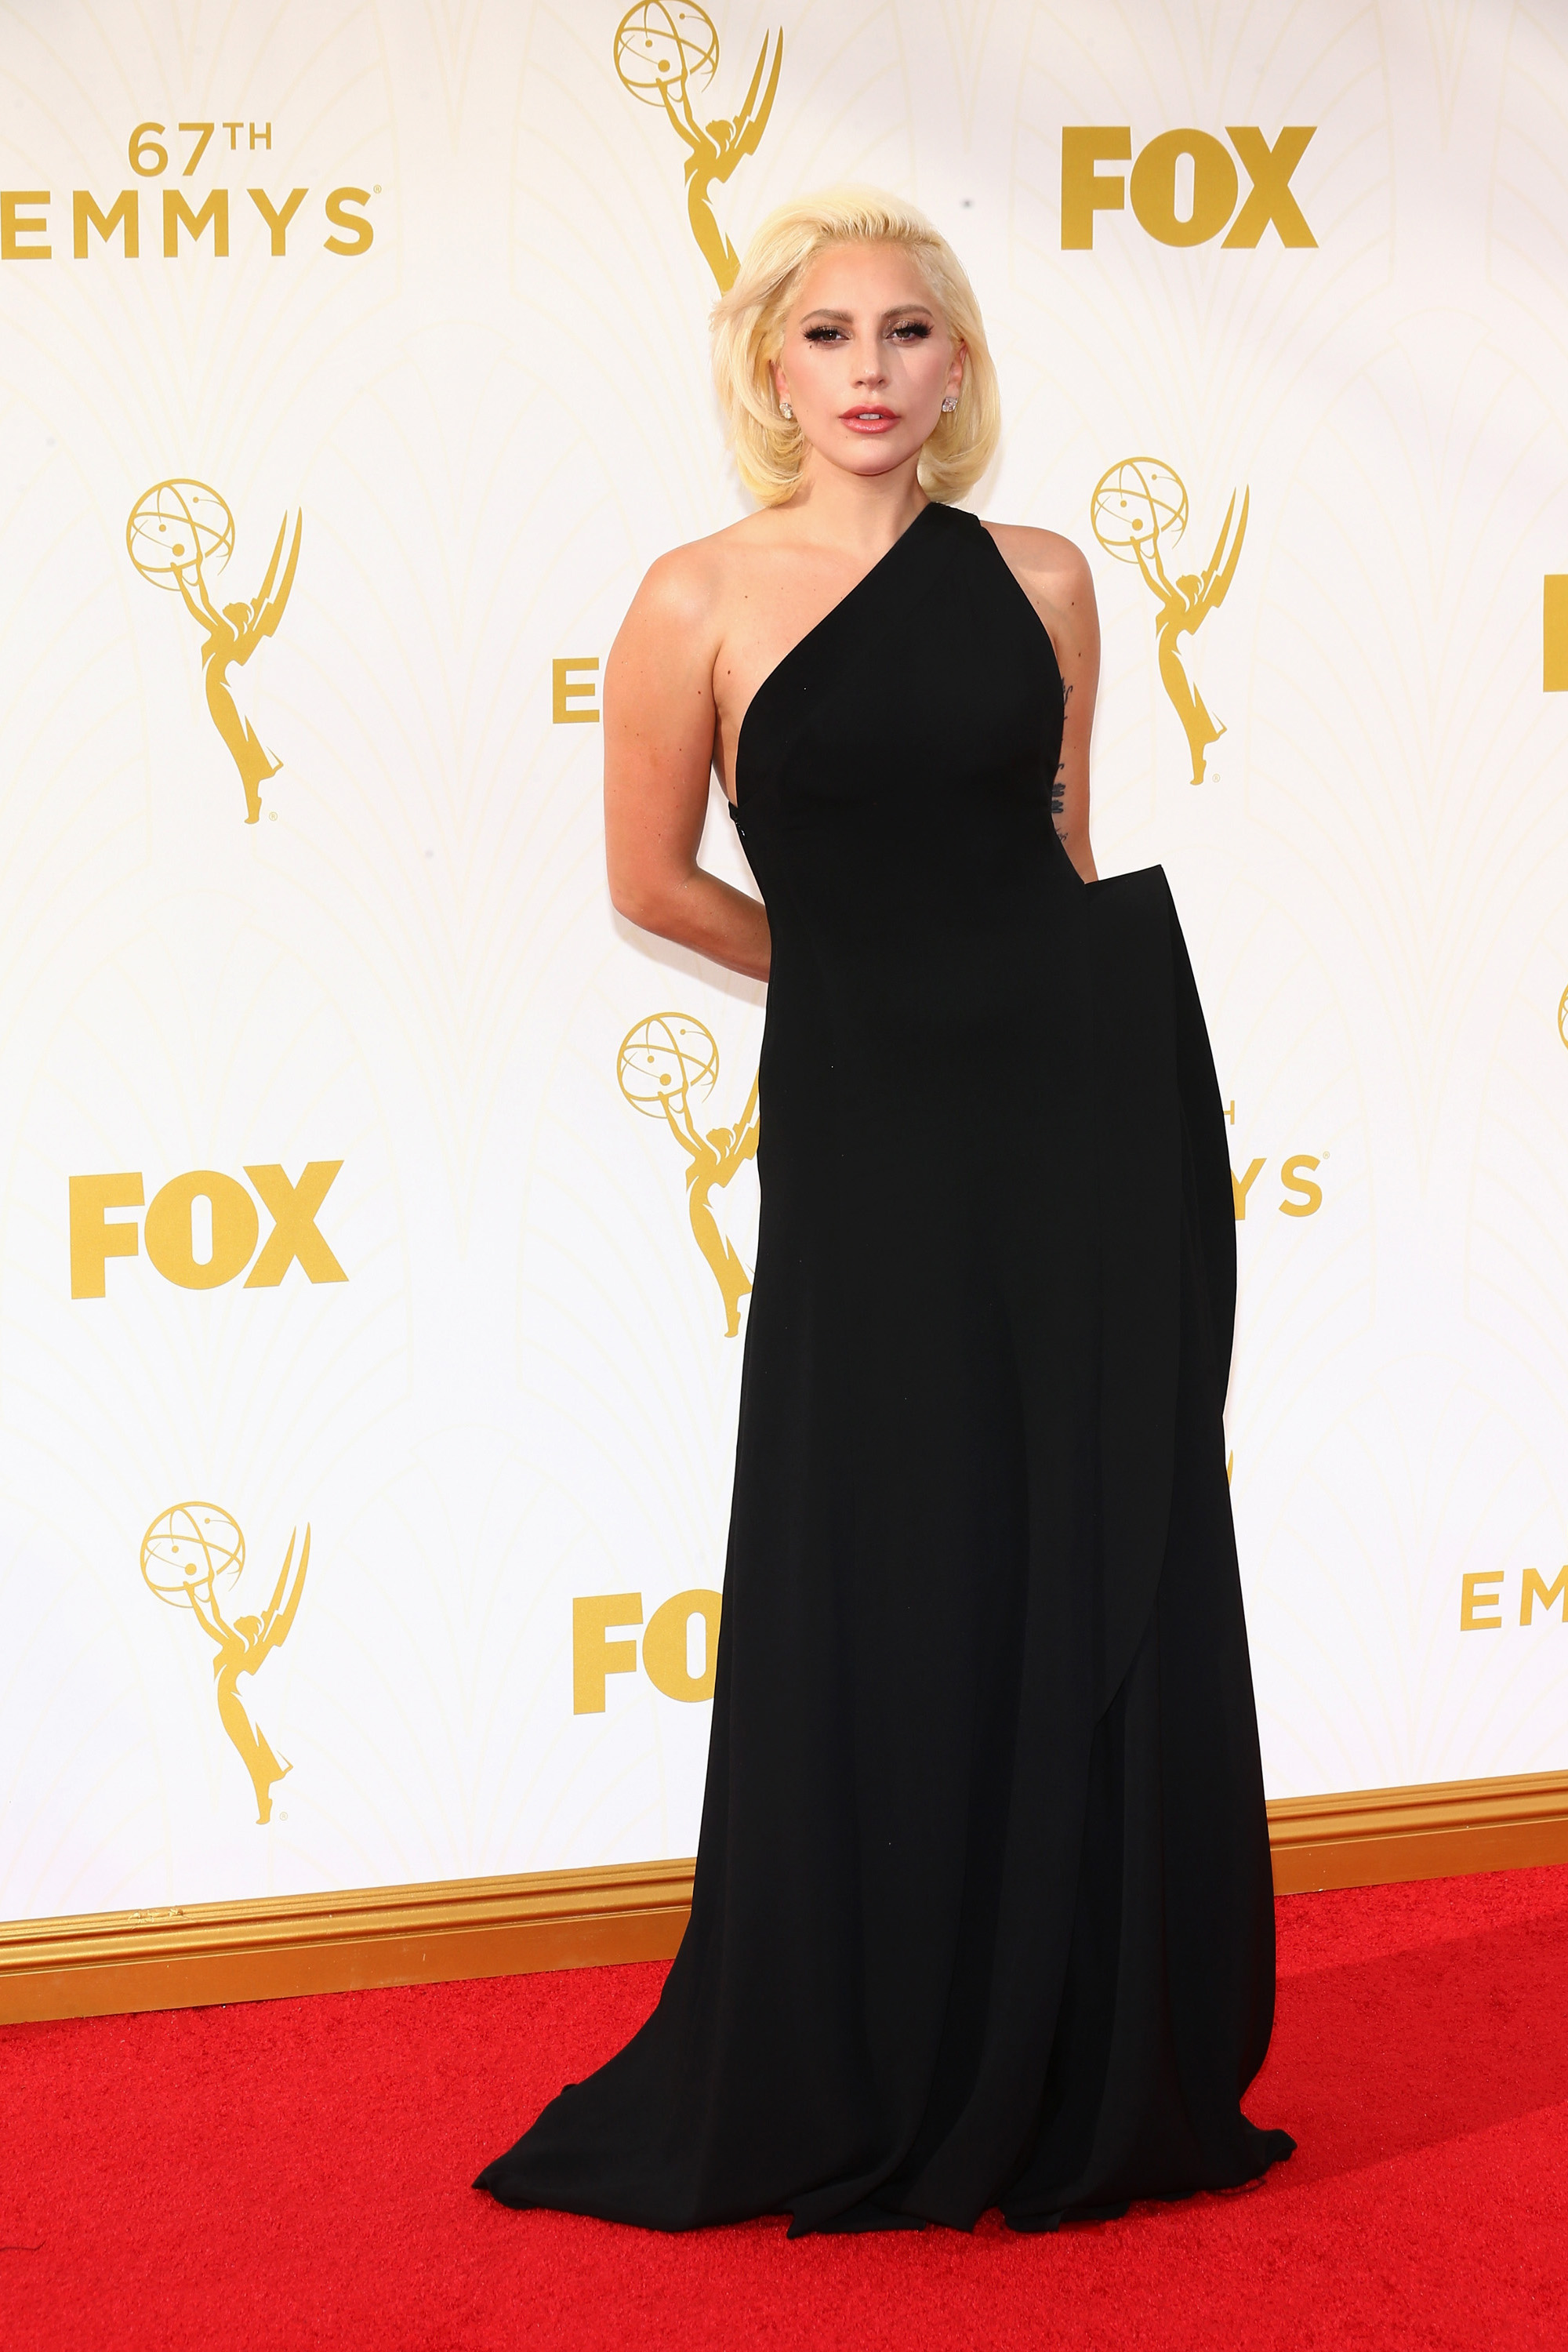 Lady Gaga on the red carpet at the 67th Emmy Awards